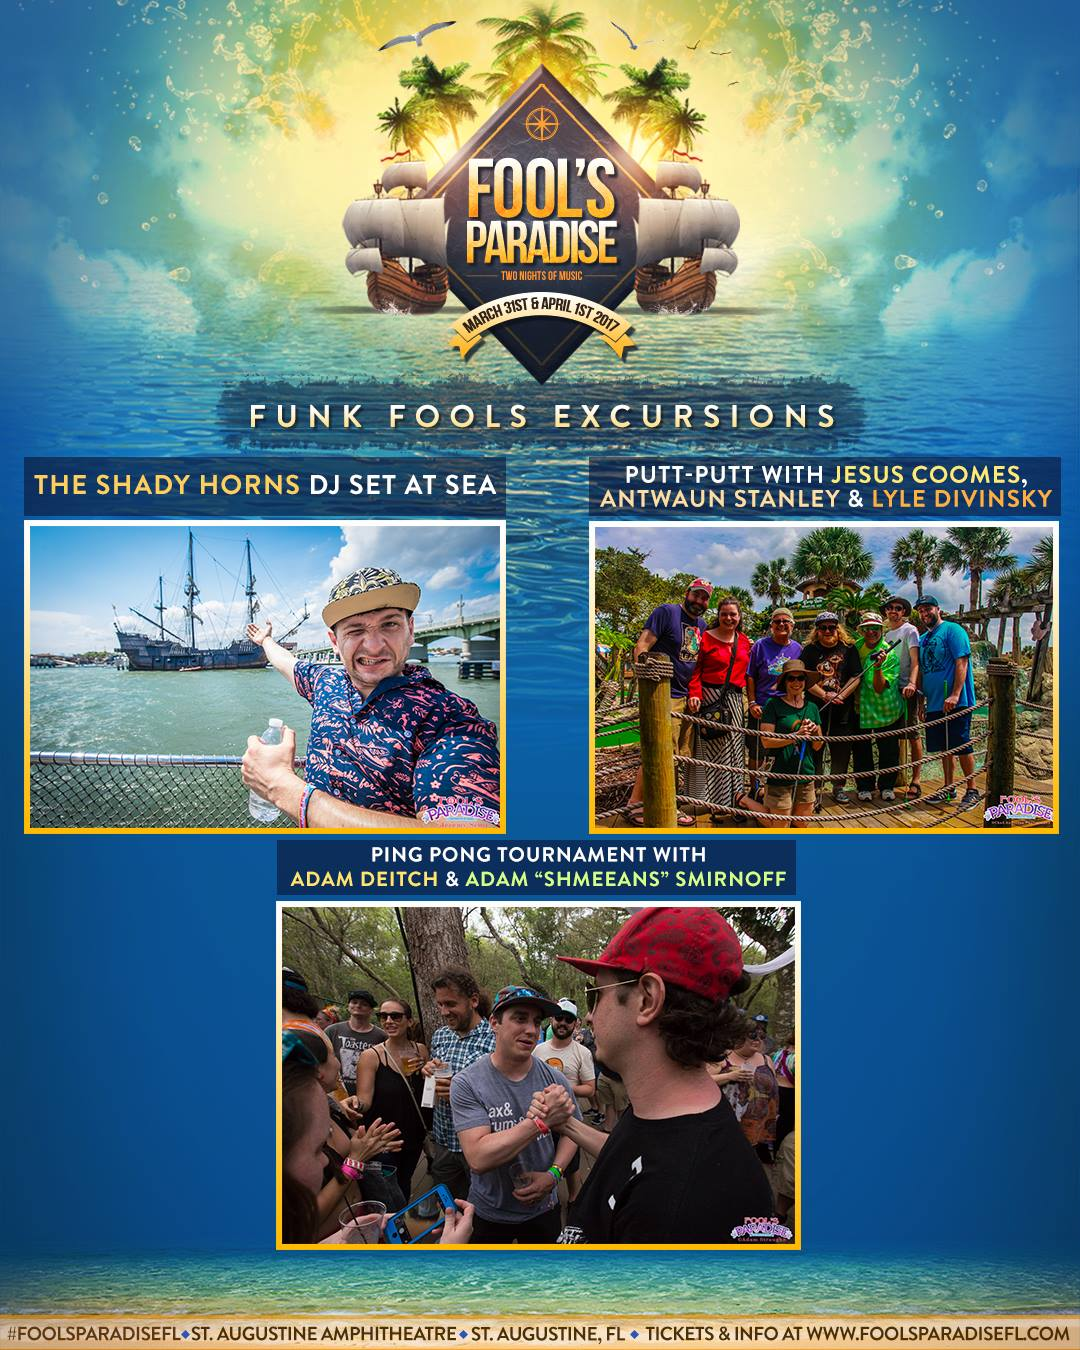 fools paradise excursions